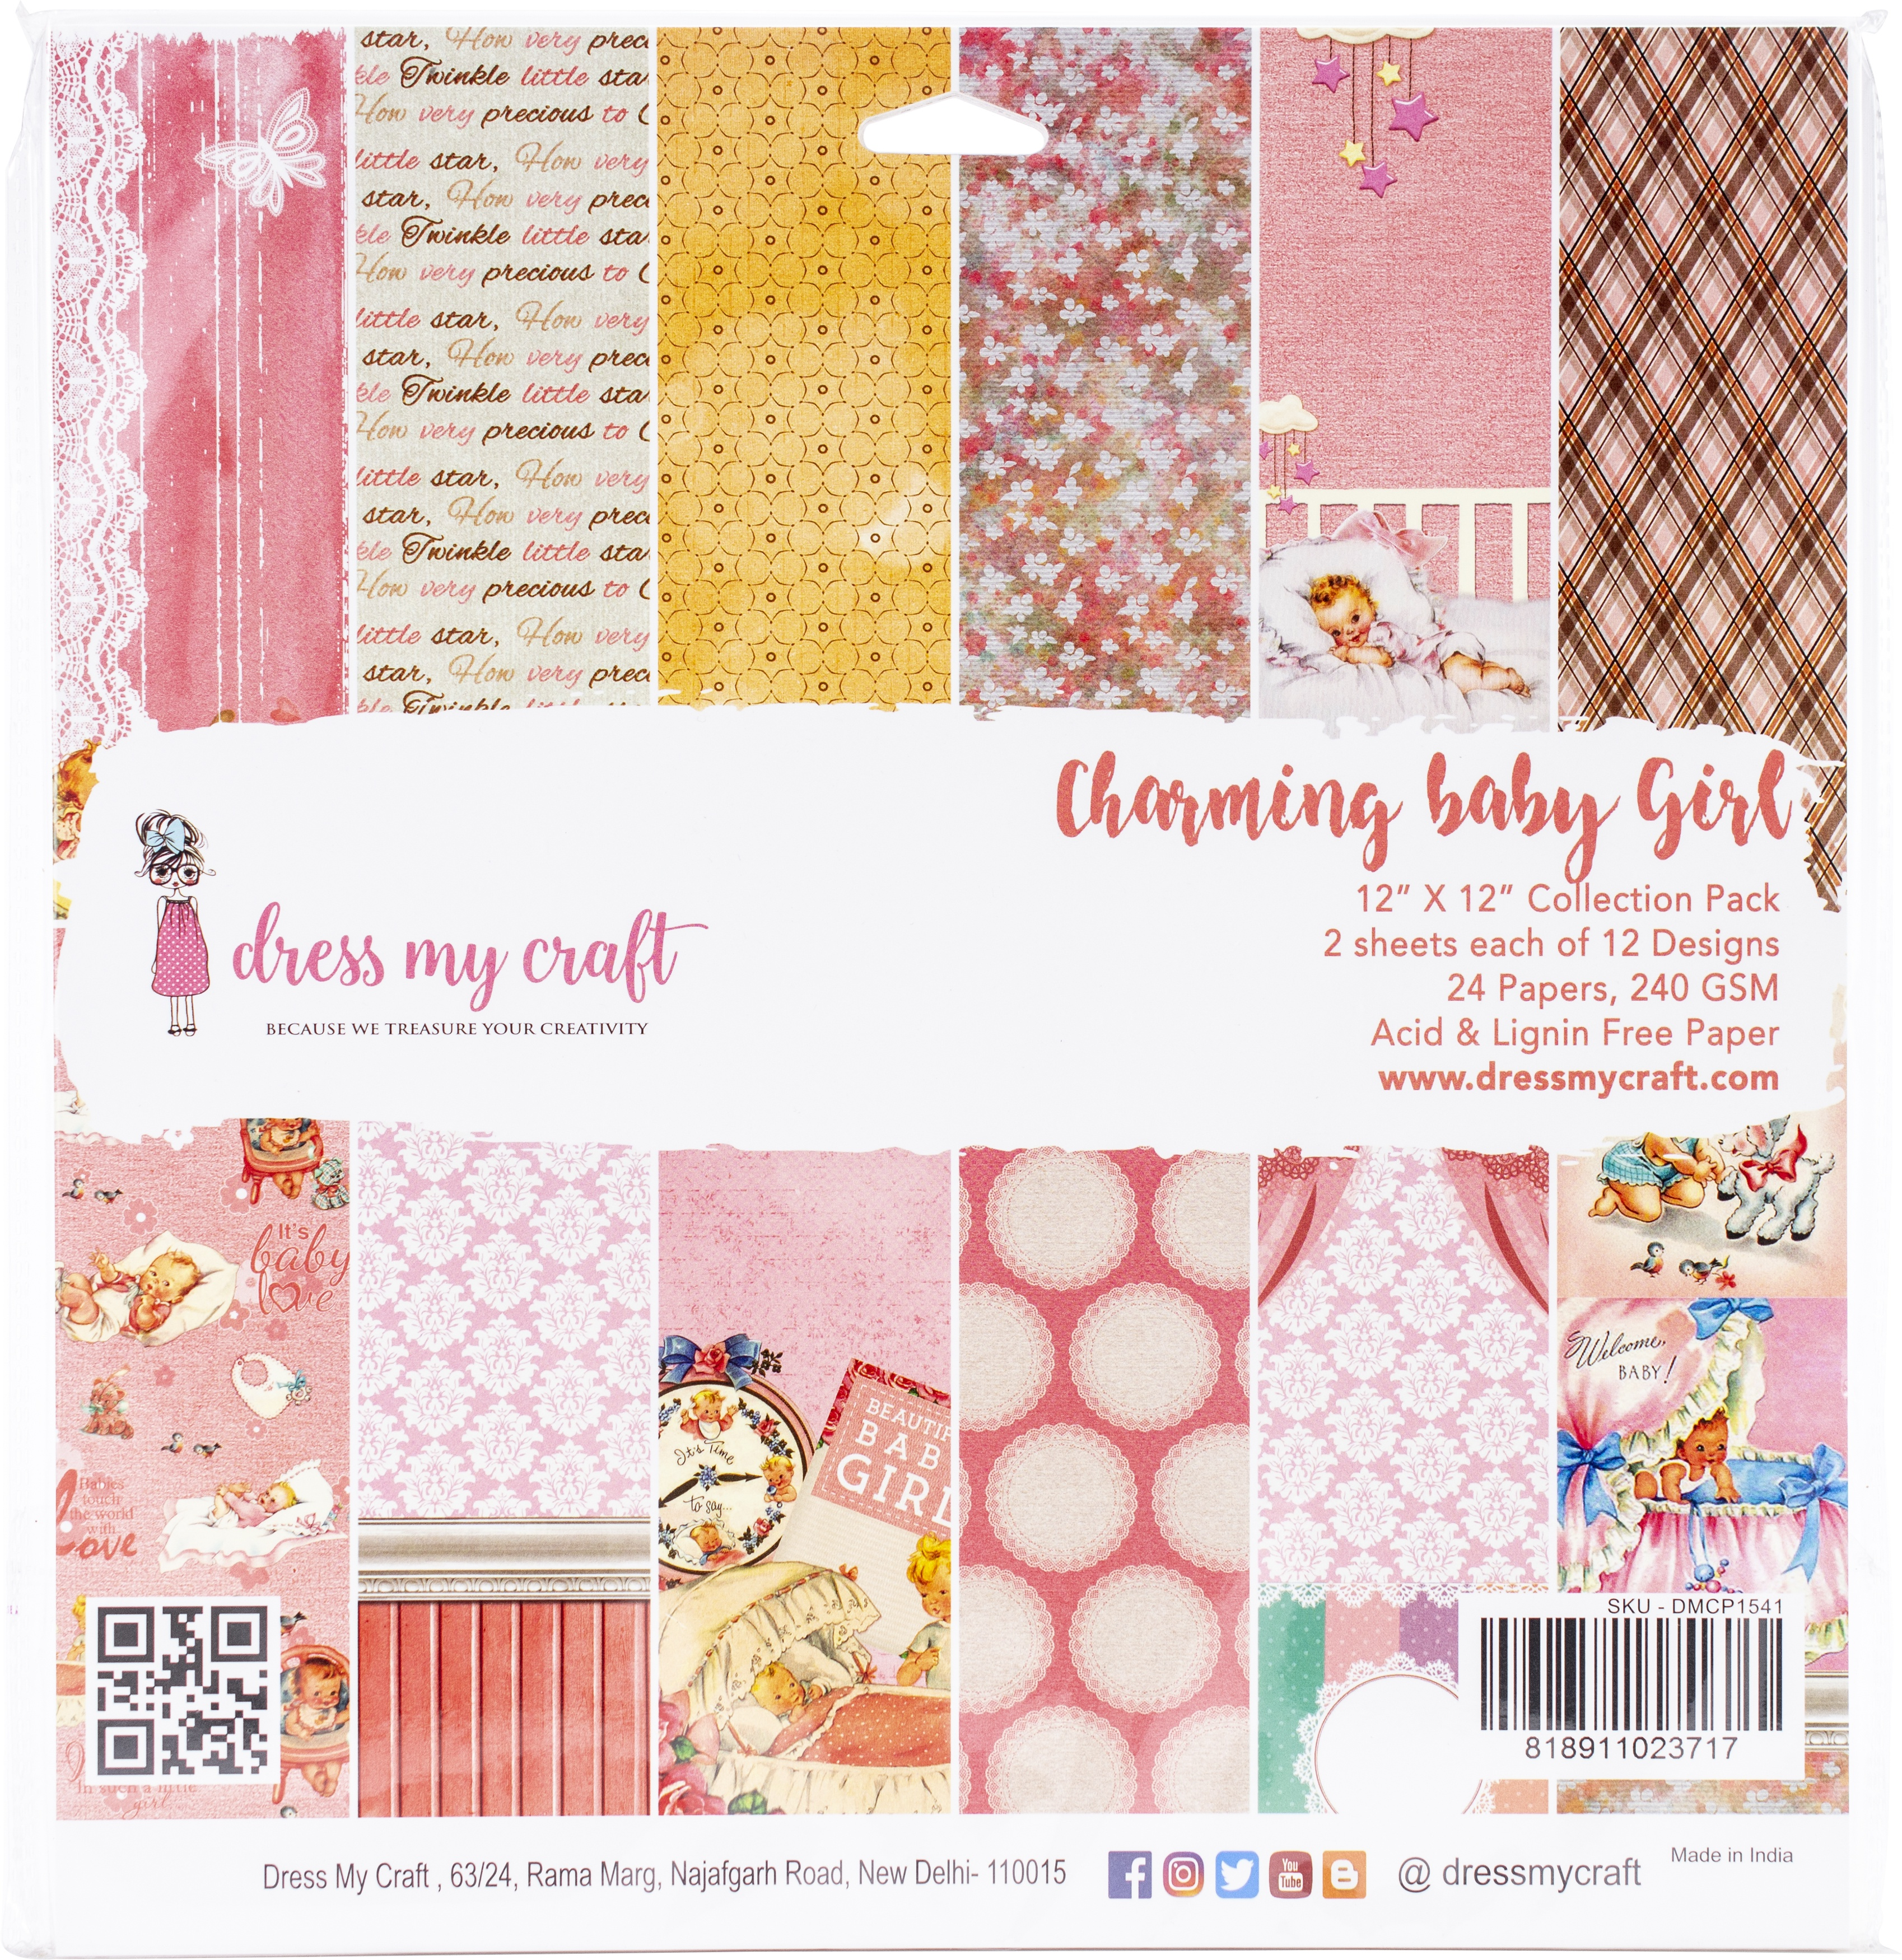 Dress My Craft Charming Baby Girl Collection Pack Paper